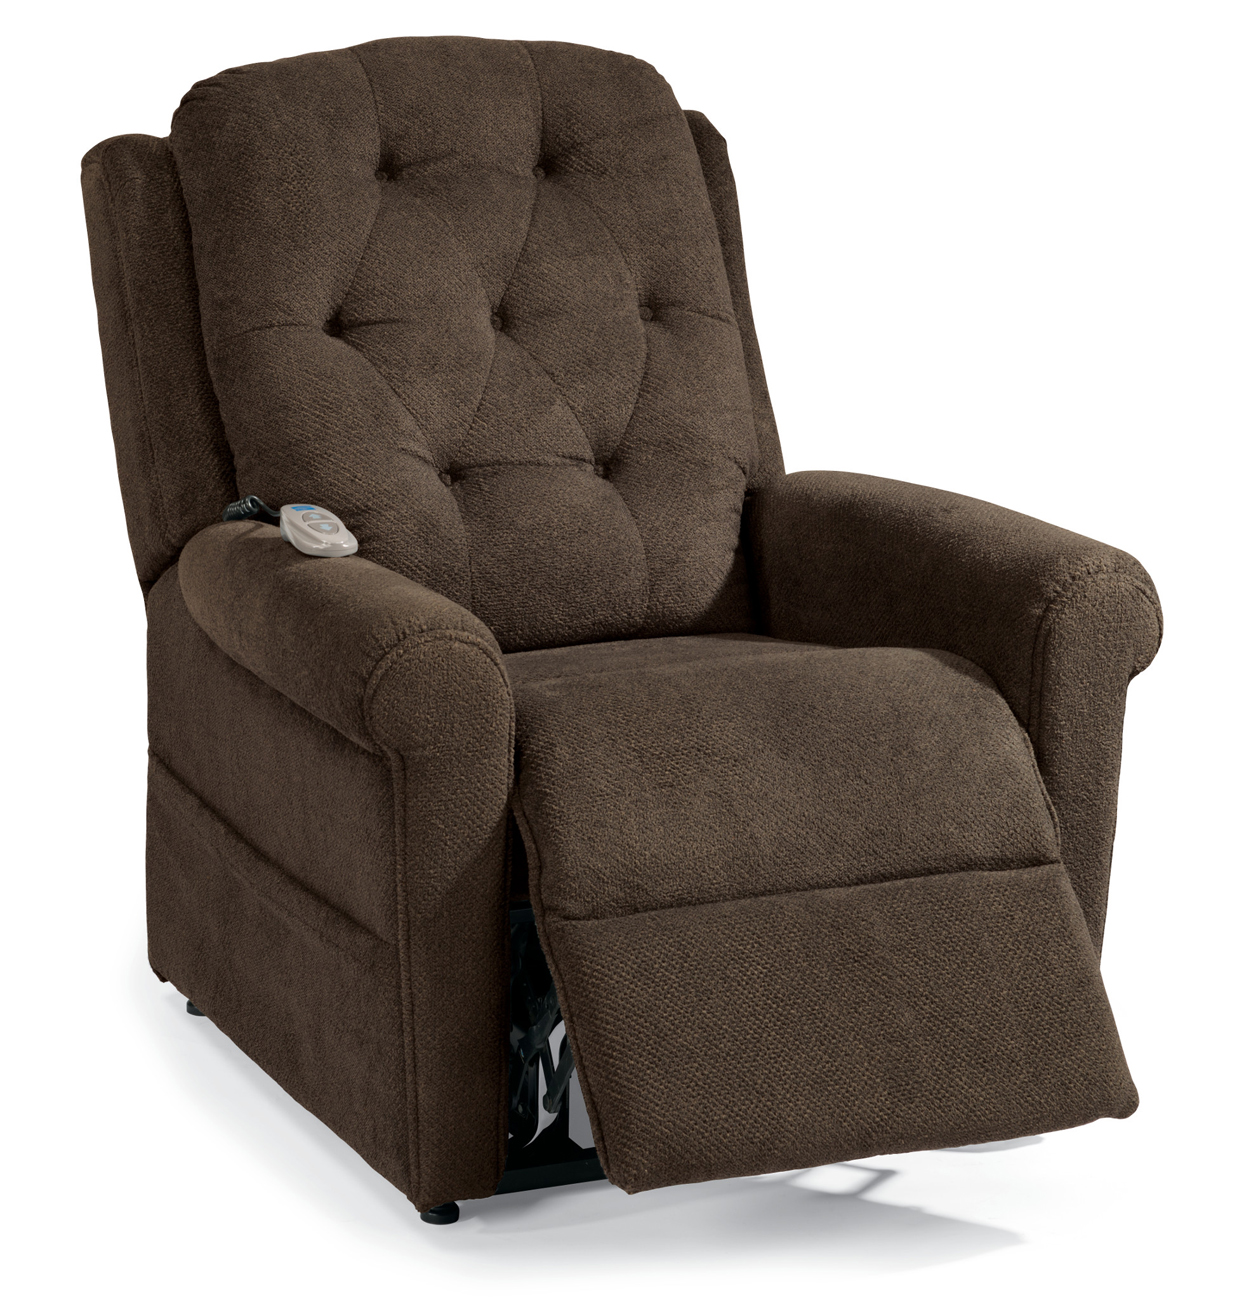 Flexsteel Dora Brown Fabric Lift Recliner Chair